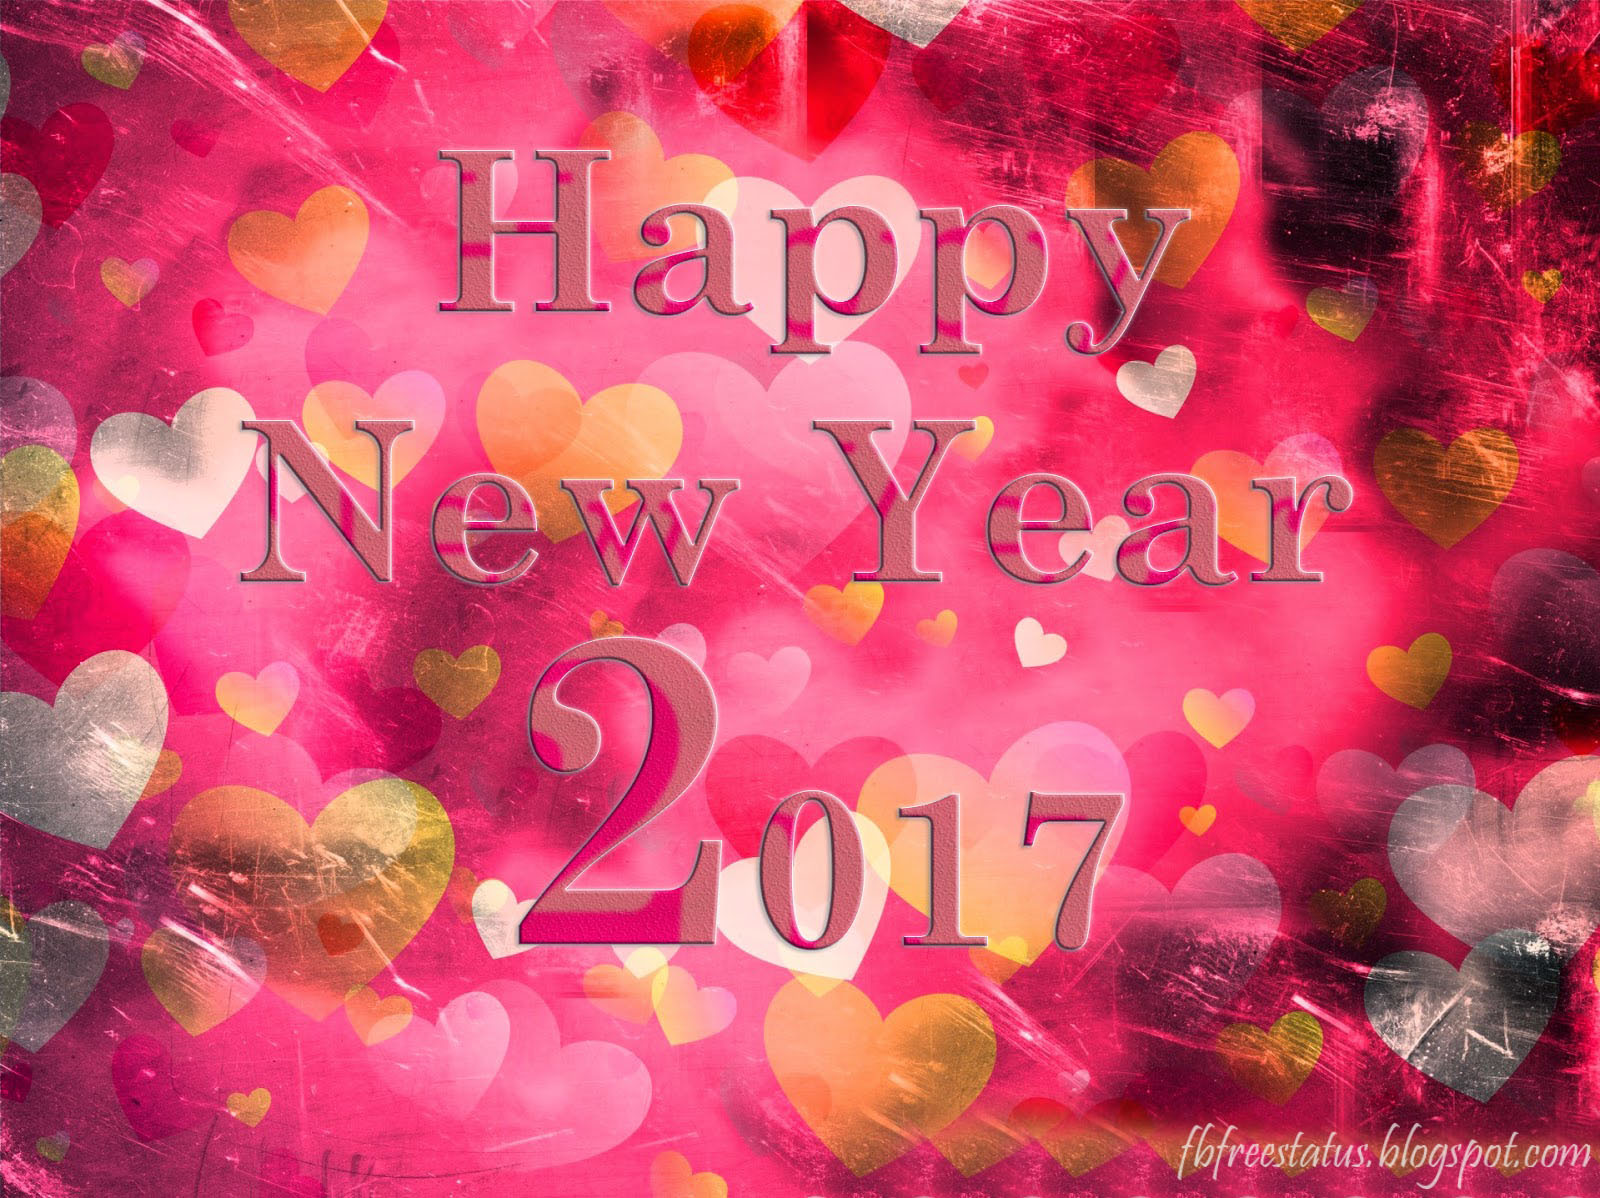 happy New Year Images 2017 and photos